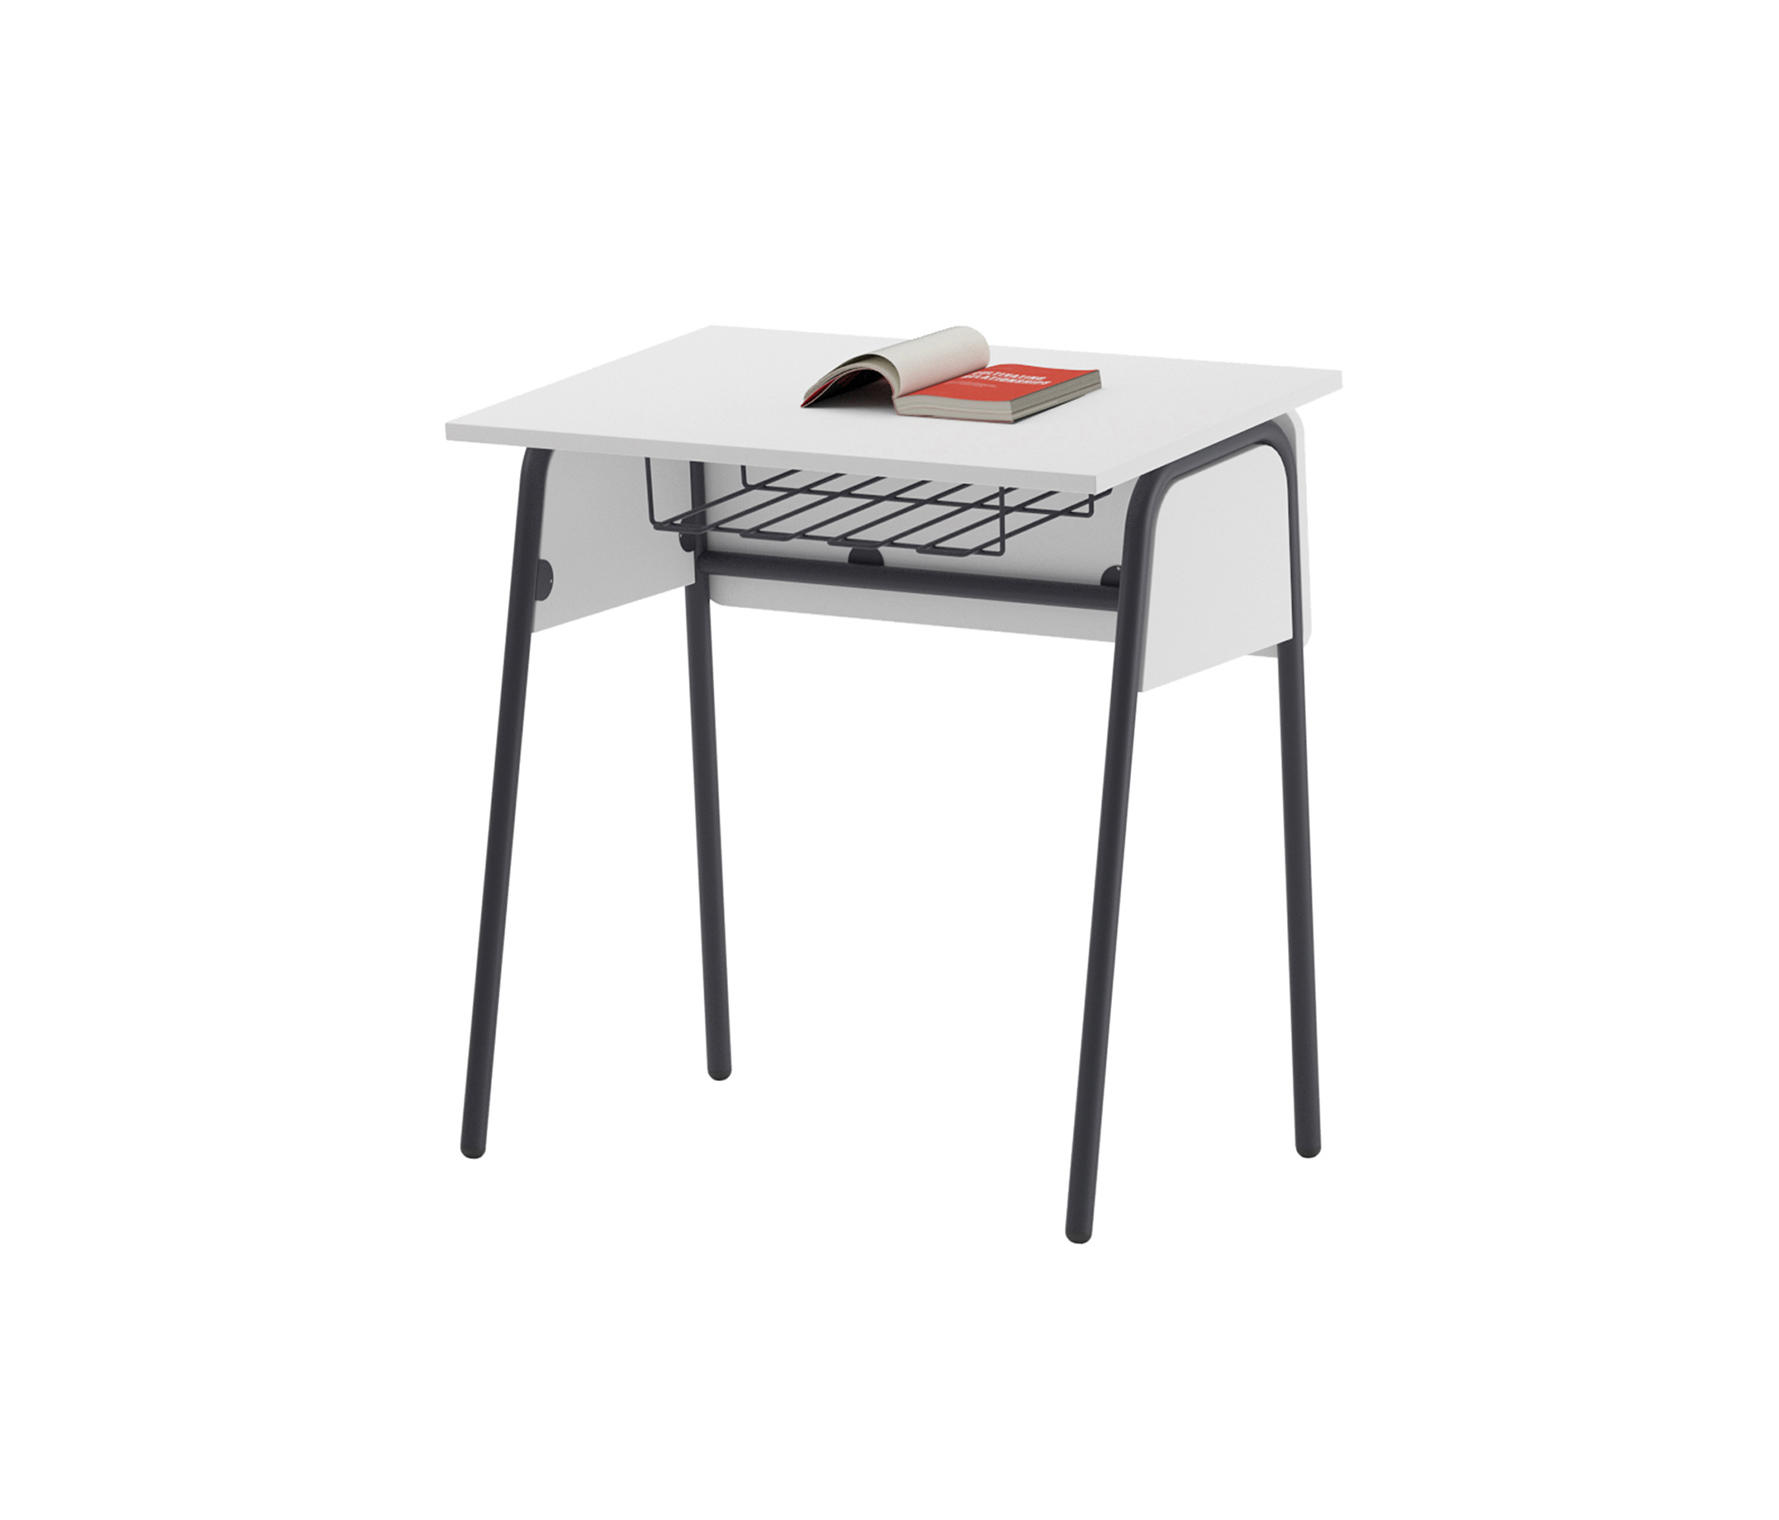 Erwin Contract Tables From Ersa Architonic